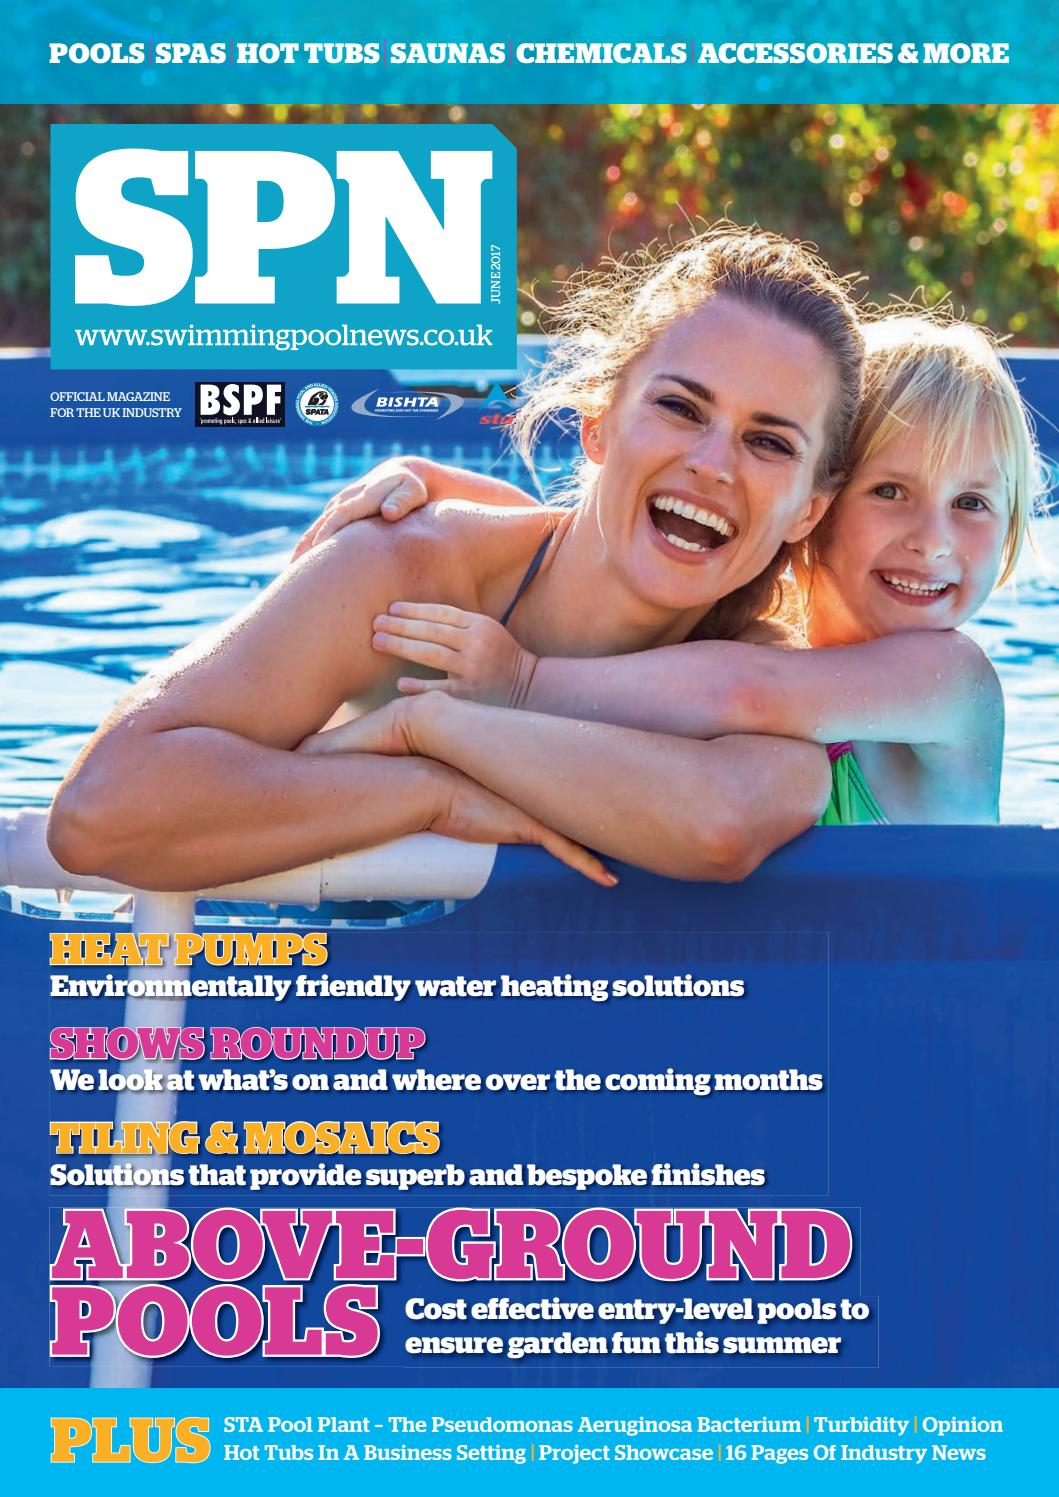 Spn Swimming Pool News June 2017 By Aqua Publishing Ltd Issuu Hot Tub Wiring Cost Uk